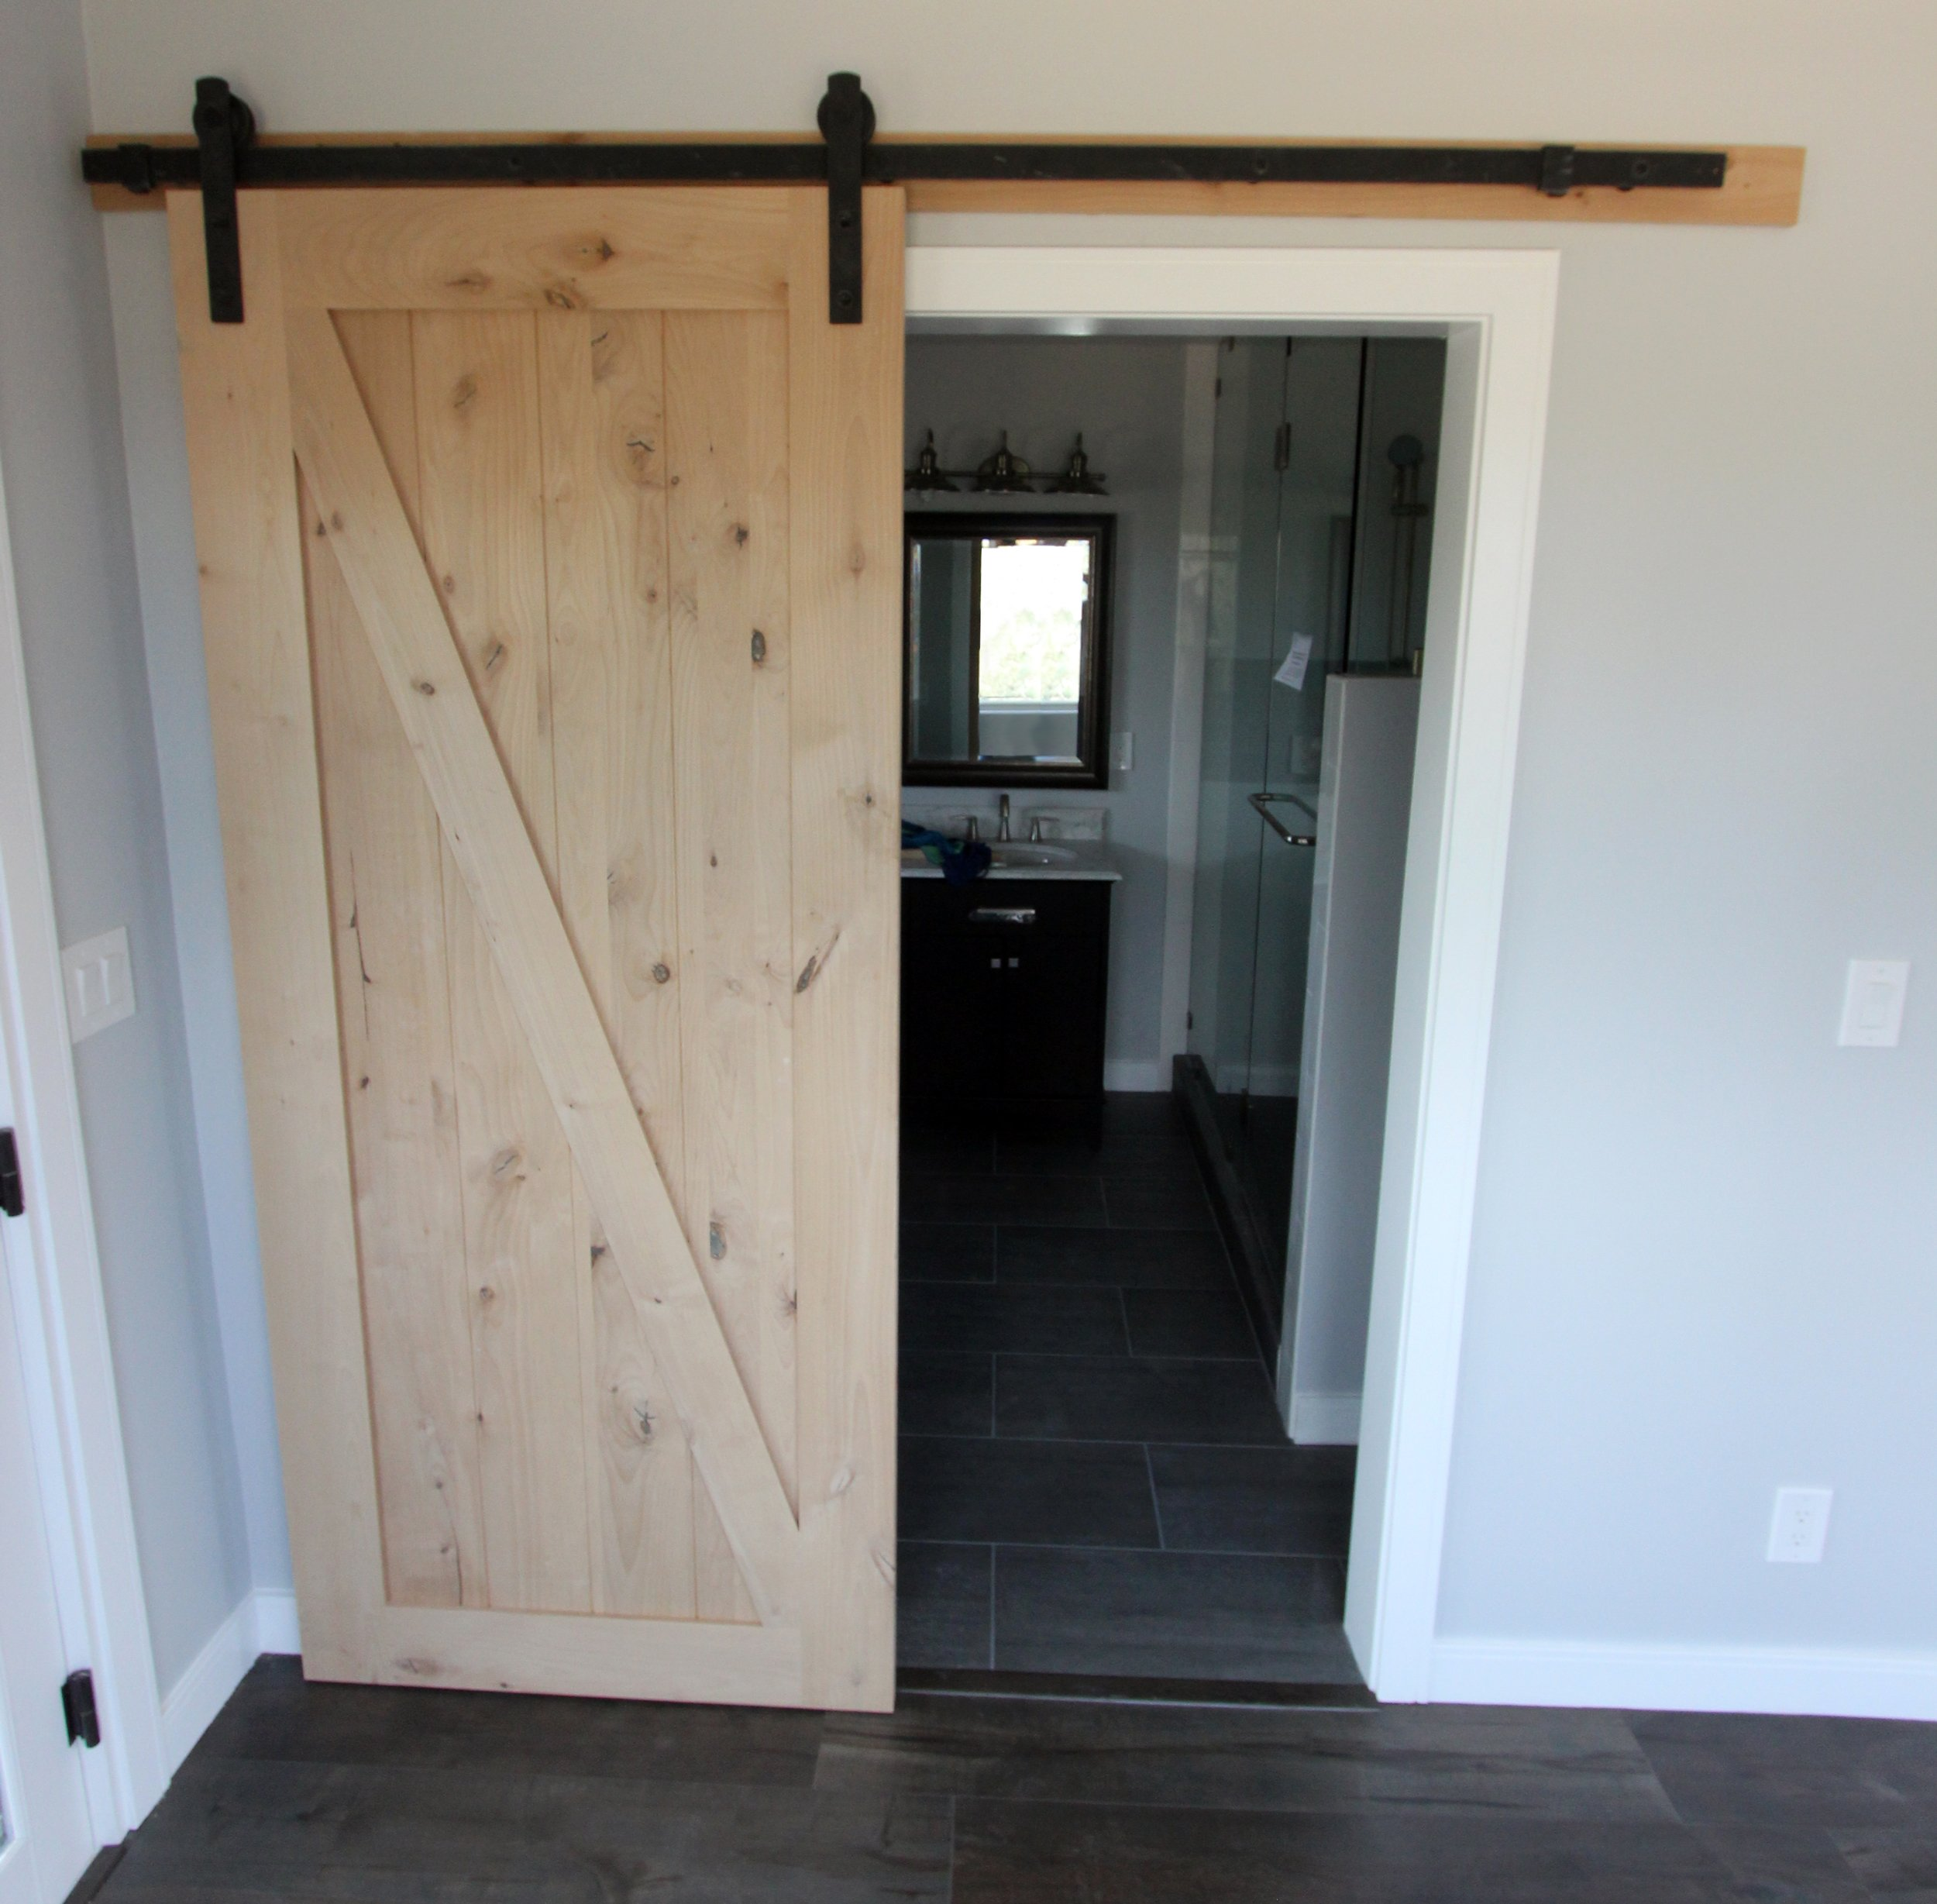 Attrayant TR Constructionu0027s Experienced Installers Provide Professional Interior Door  Replacement, Complete With Matching Base And Crown ...